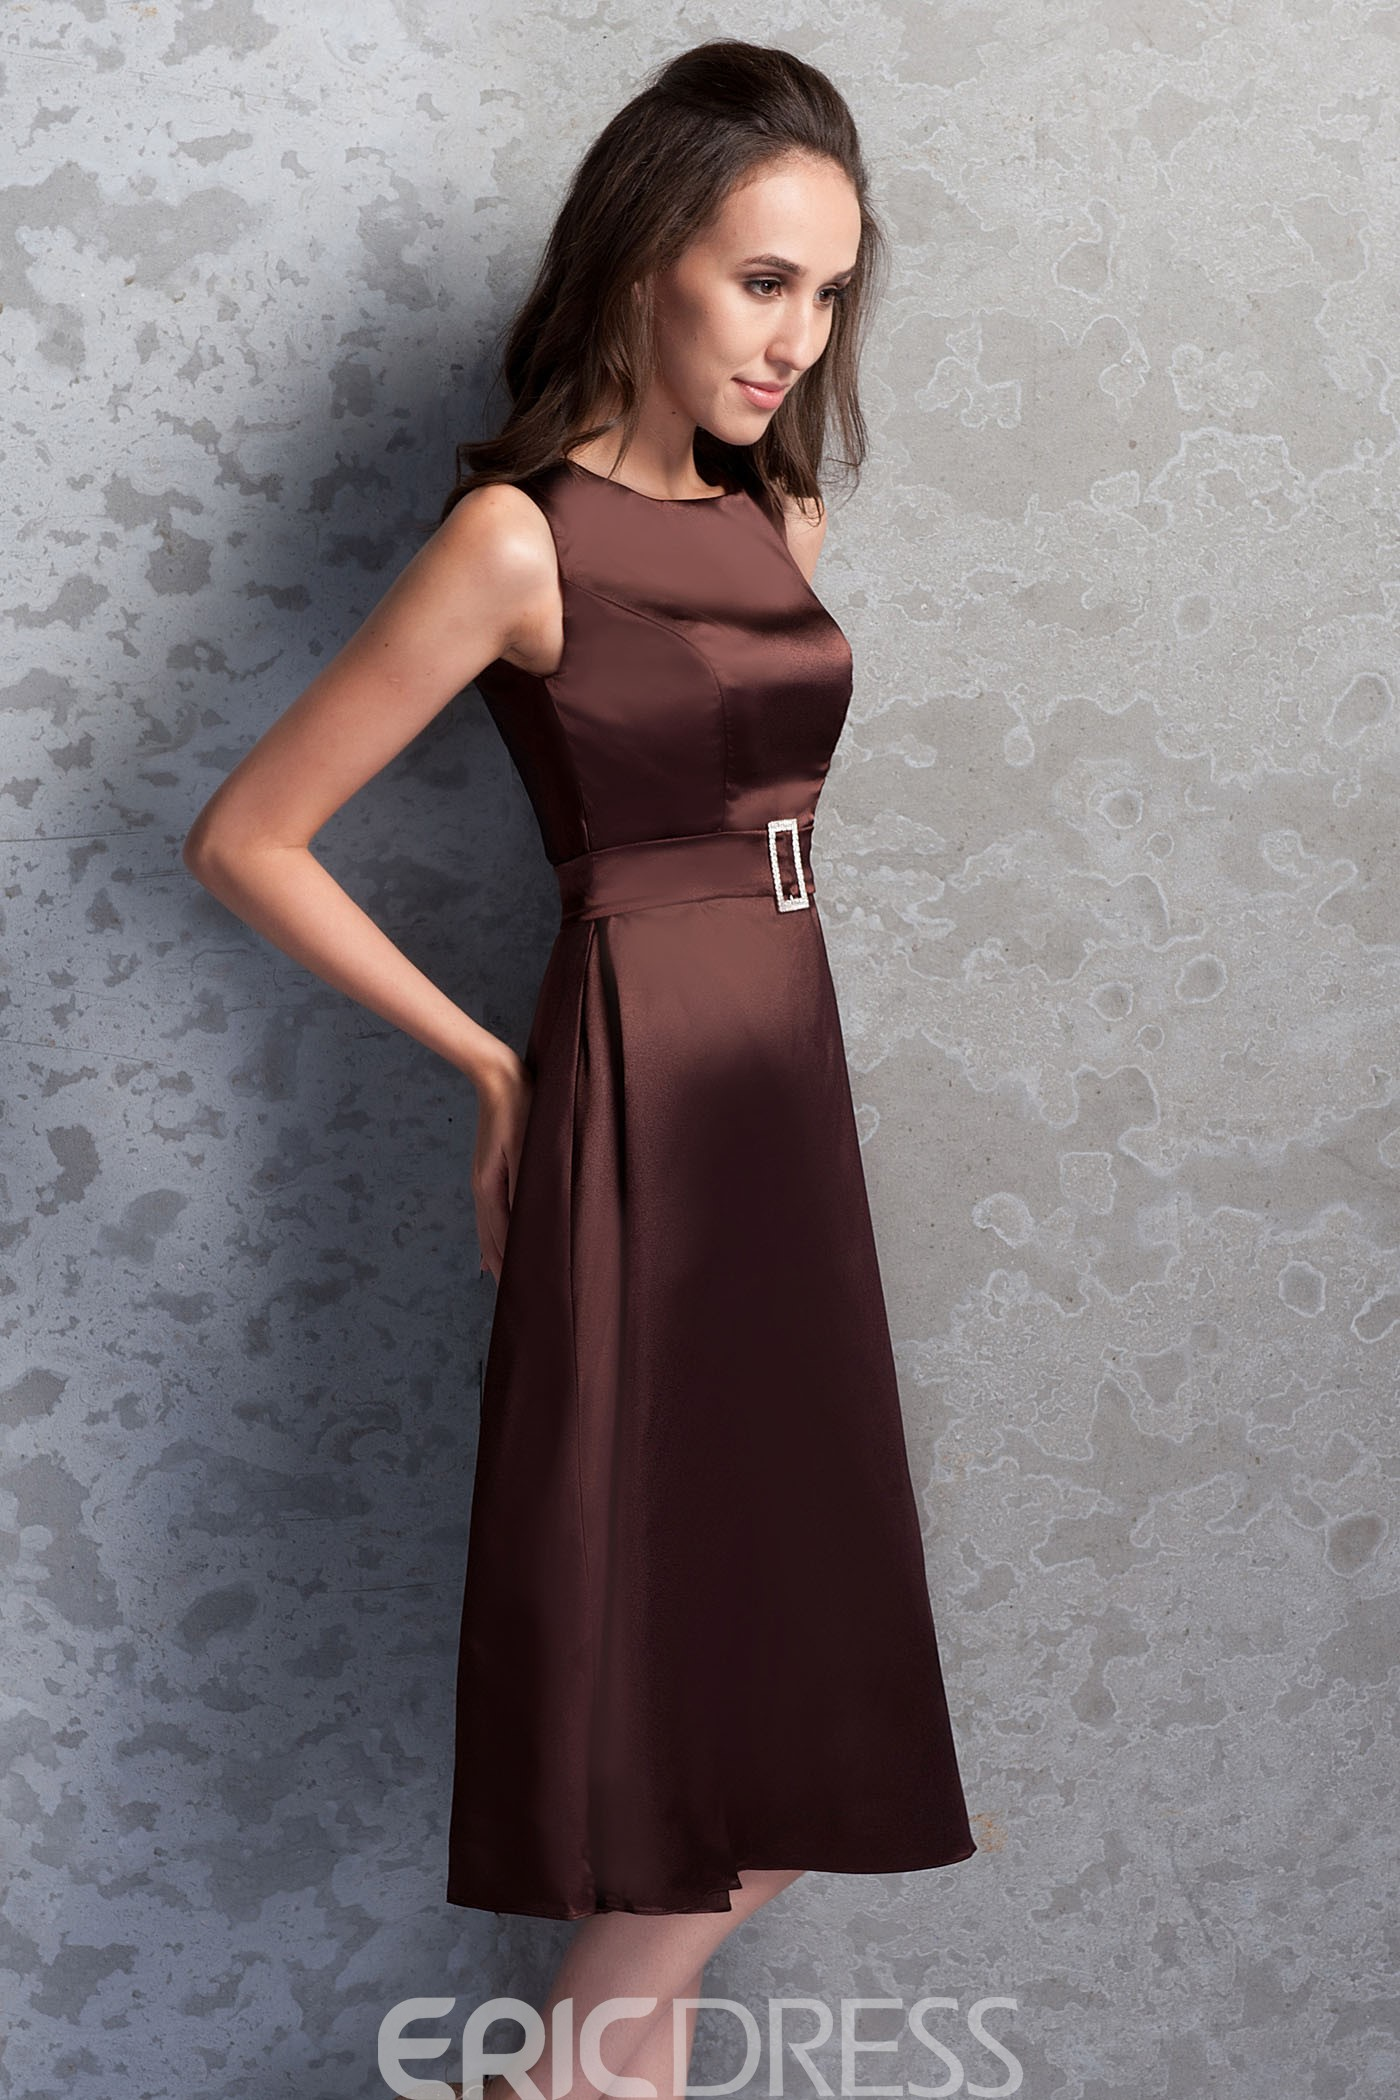 Classic A-line Square Neckline Knee-length Renata's Mother of the Bride Dress